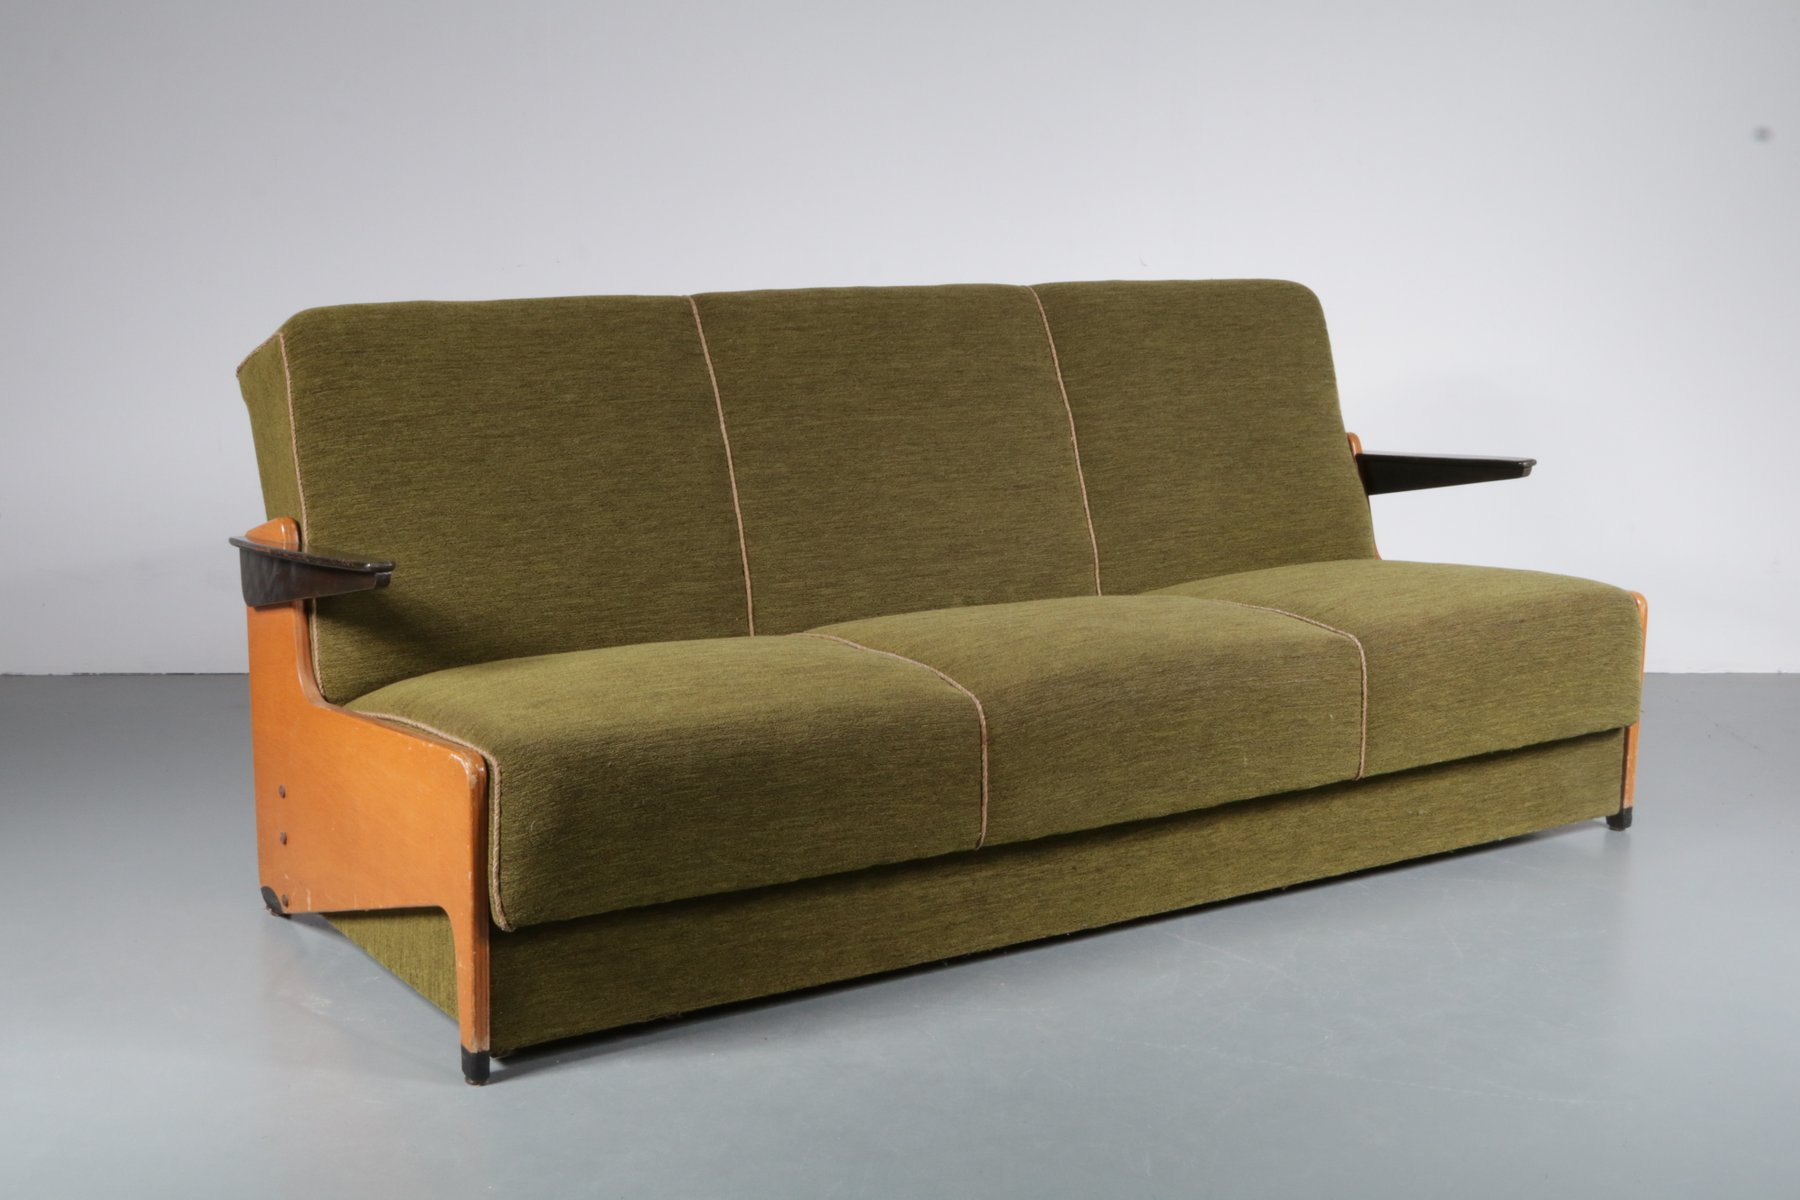 Exceptional 3 Seater Sleeping Sofa, 1950s